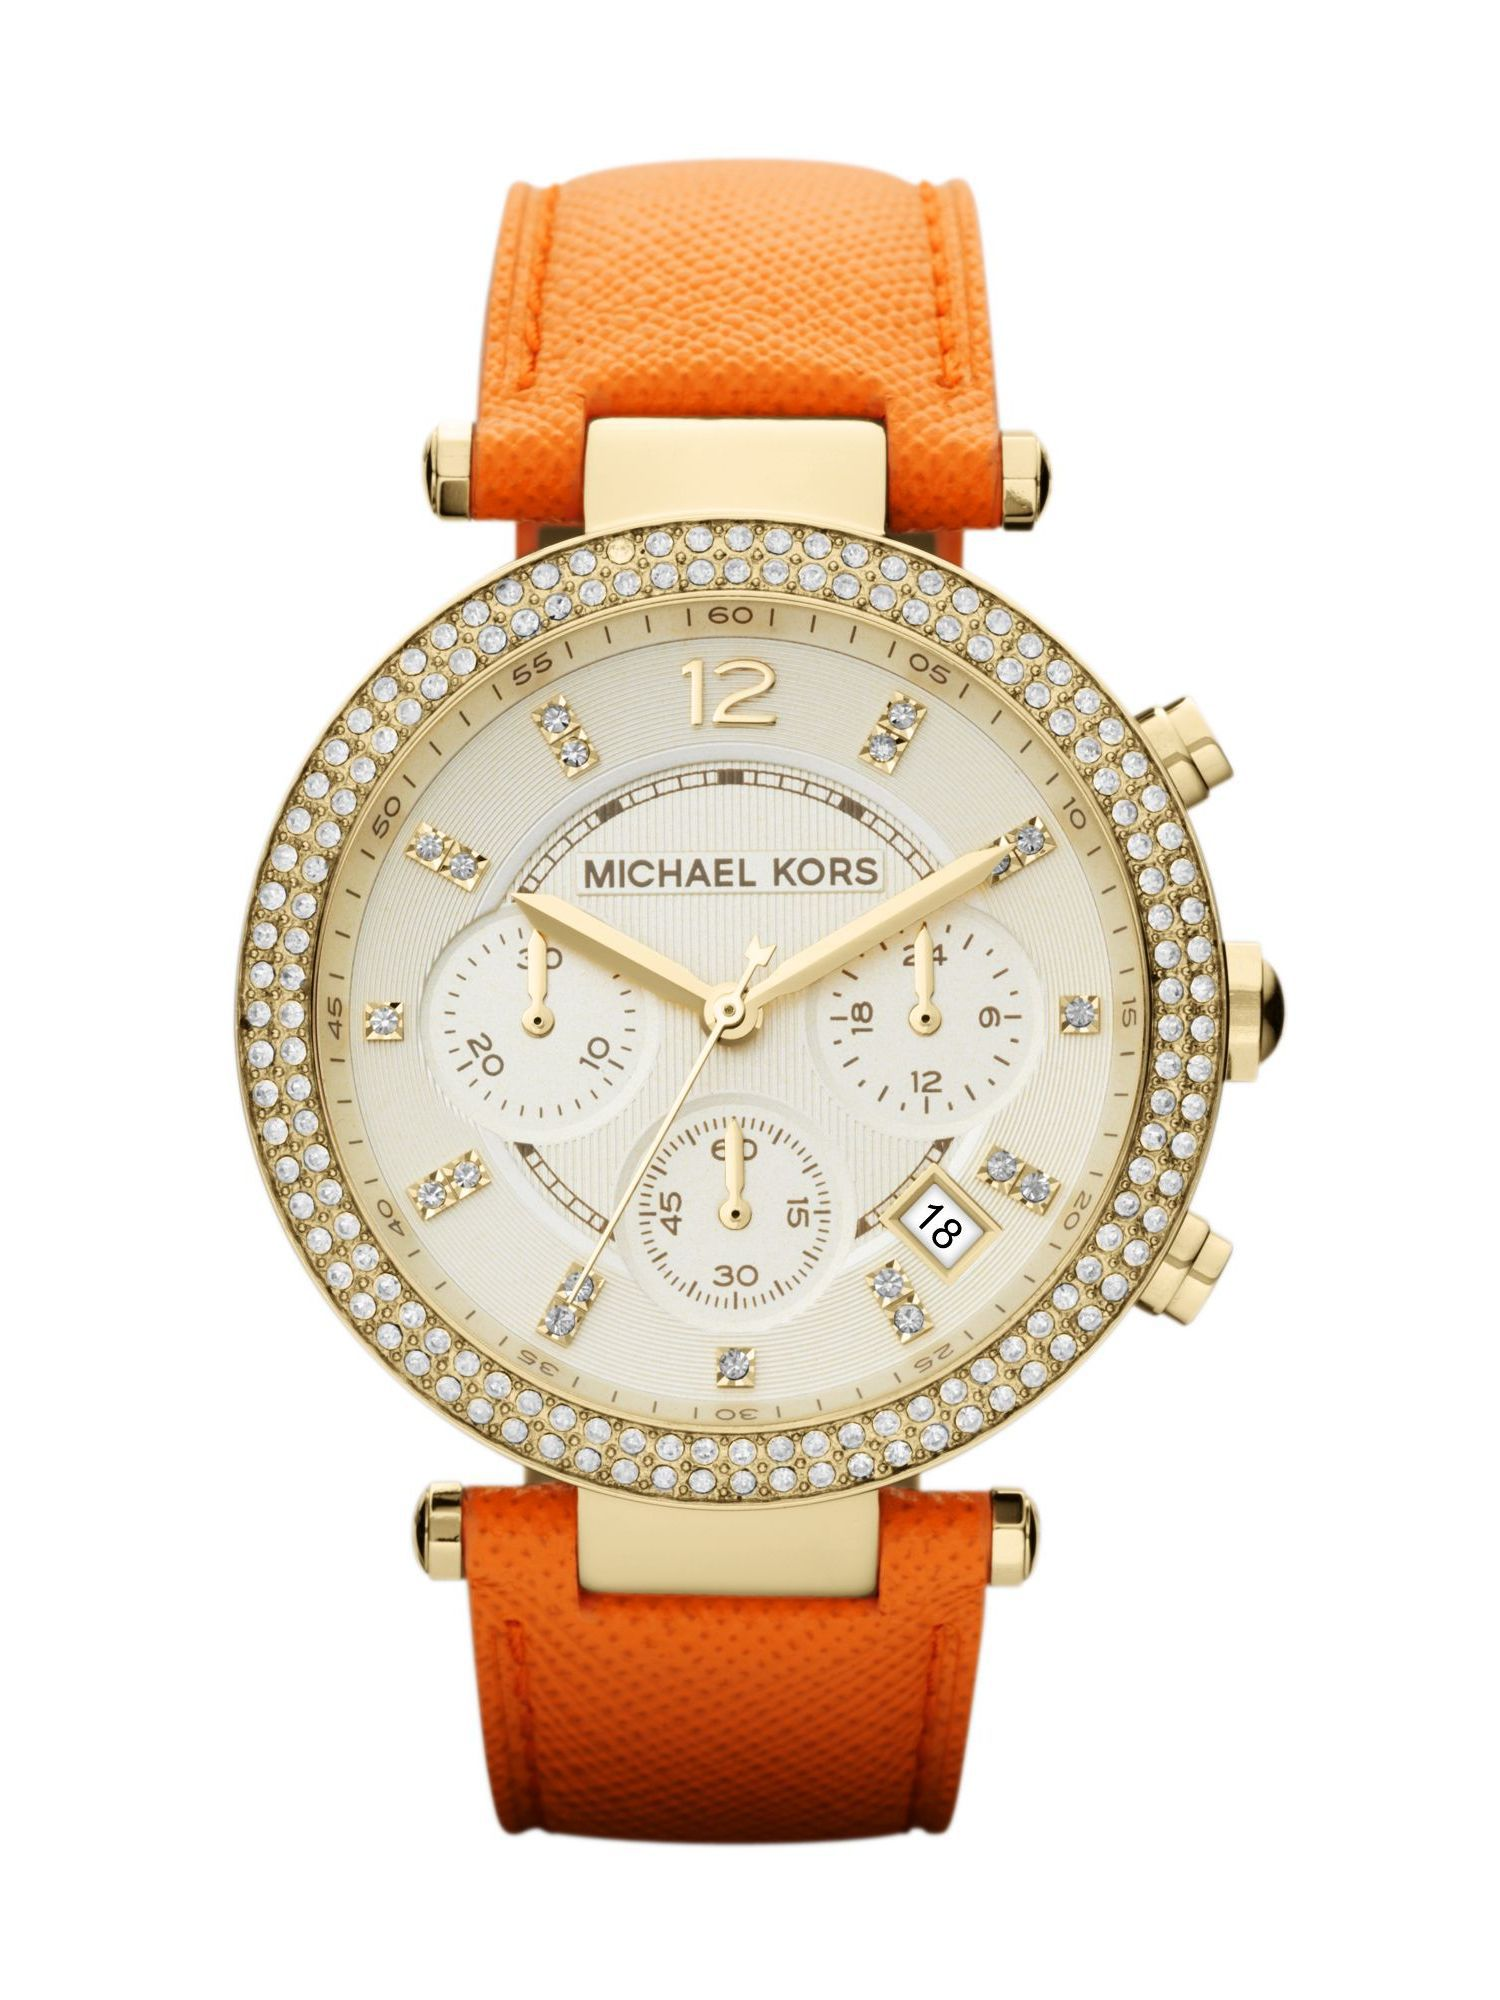 MK2279 Orange leather ladies watch